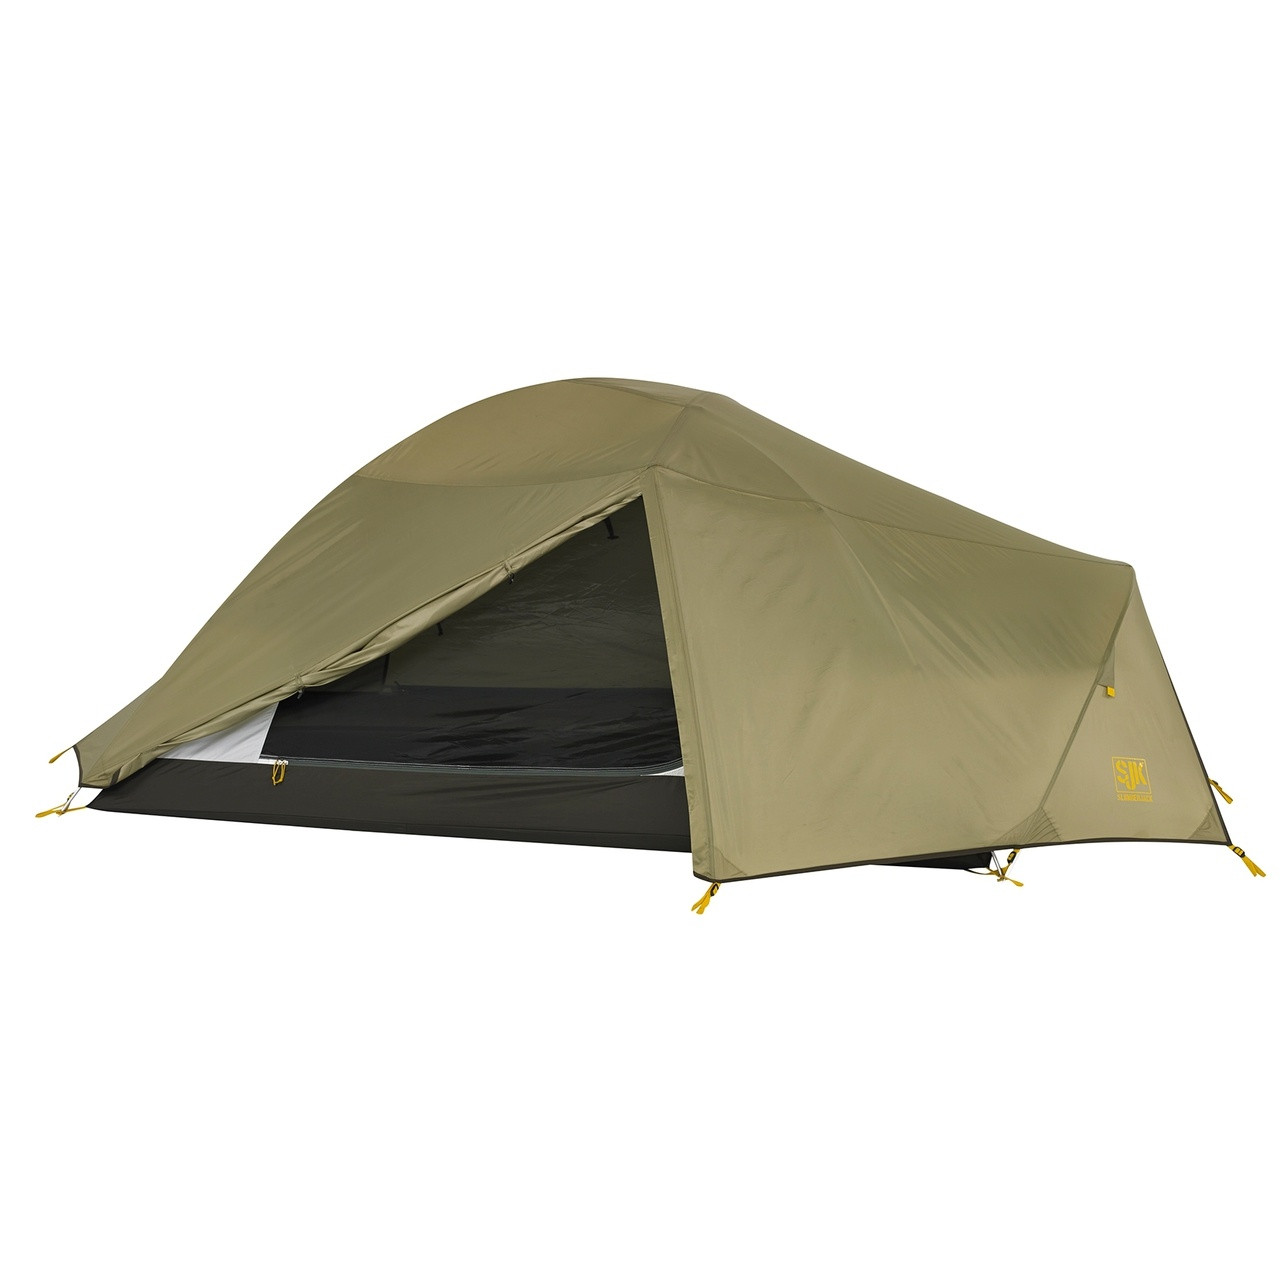 ... Sightline 2-Person Tent. Image 1  sc 1 st  Slumberjack : 1 2 person tent - memphite.com